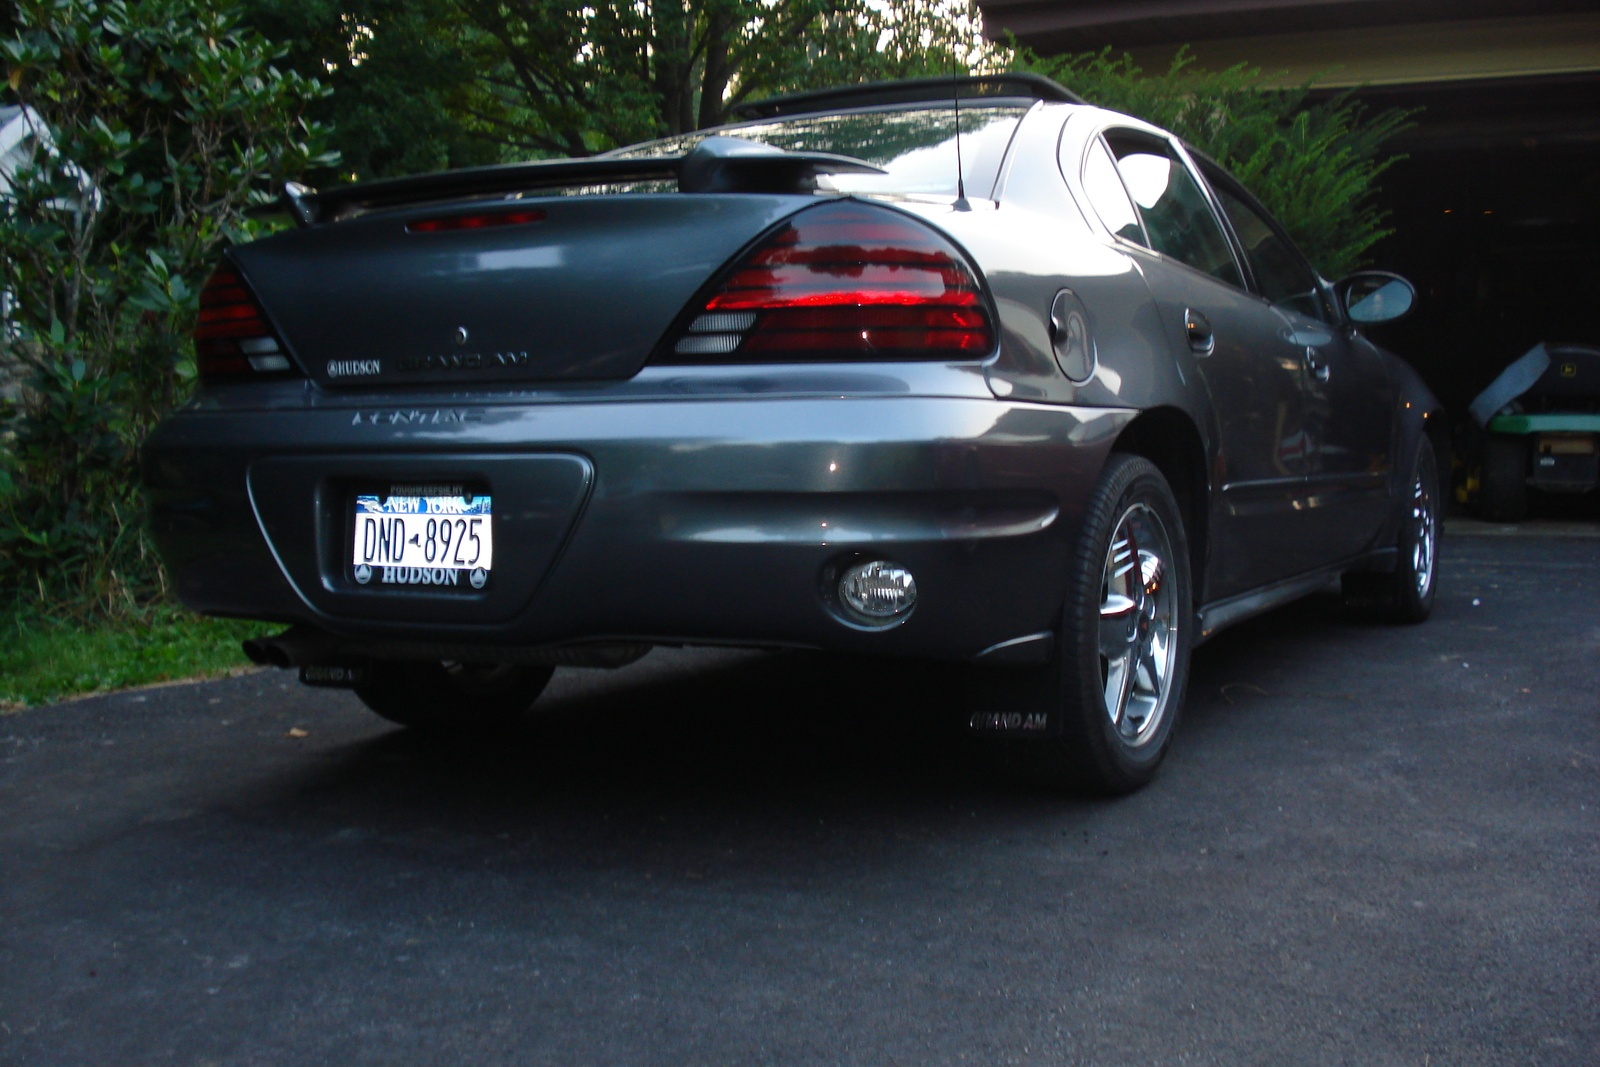 2003 Pontiac Grand Am - Pictures - 2003 Pontiac Grand Am SE pictu ...